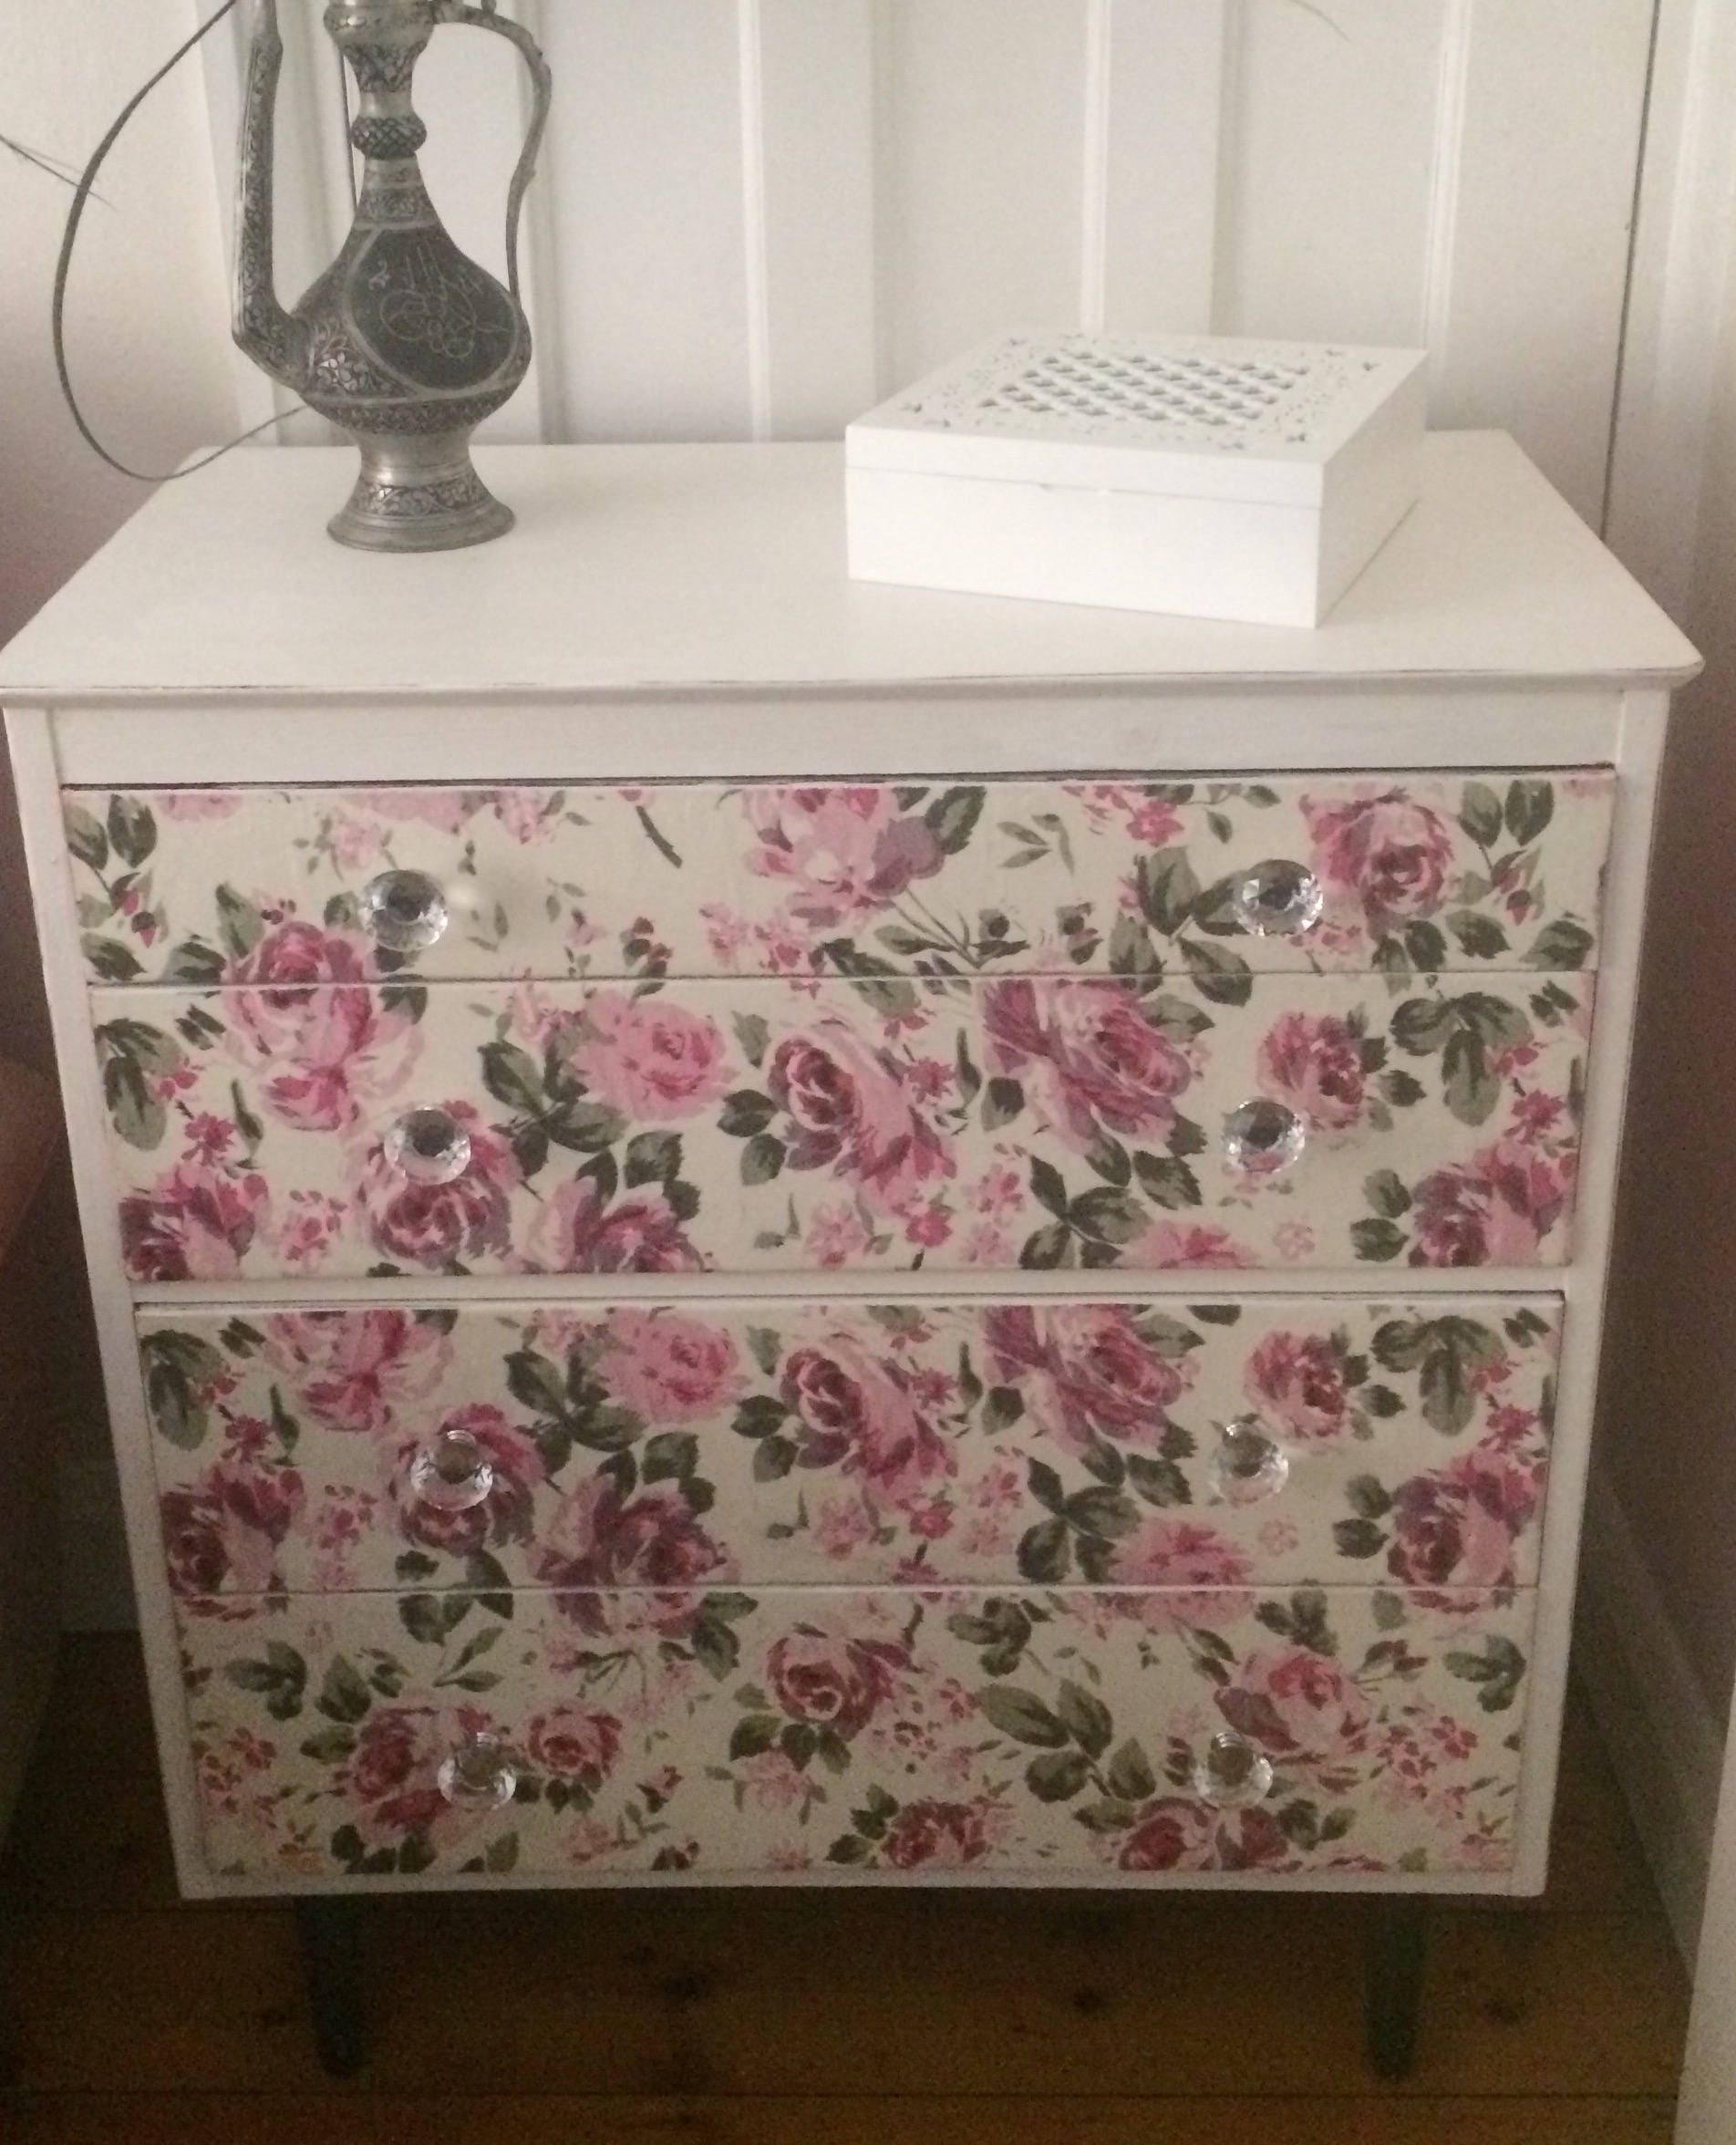 Upcycled shabby chic Antique Lebus VintageRetro chest of drawers